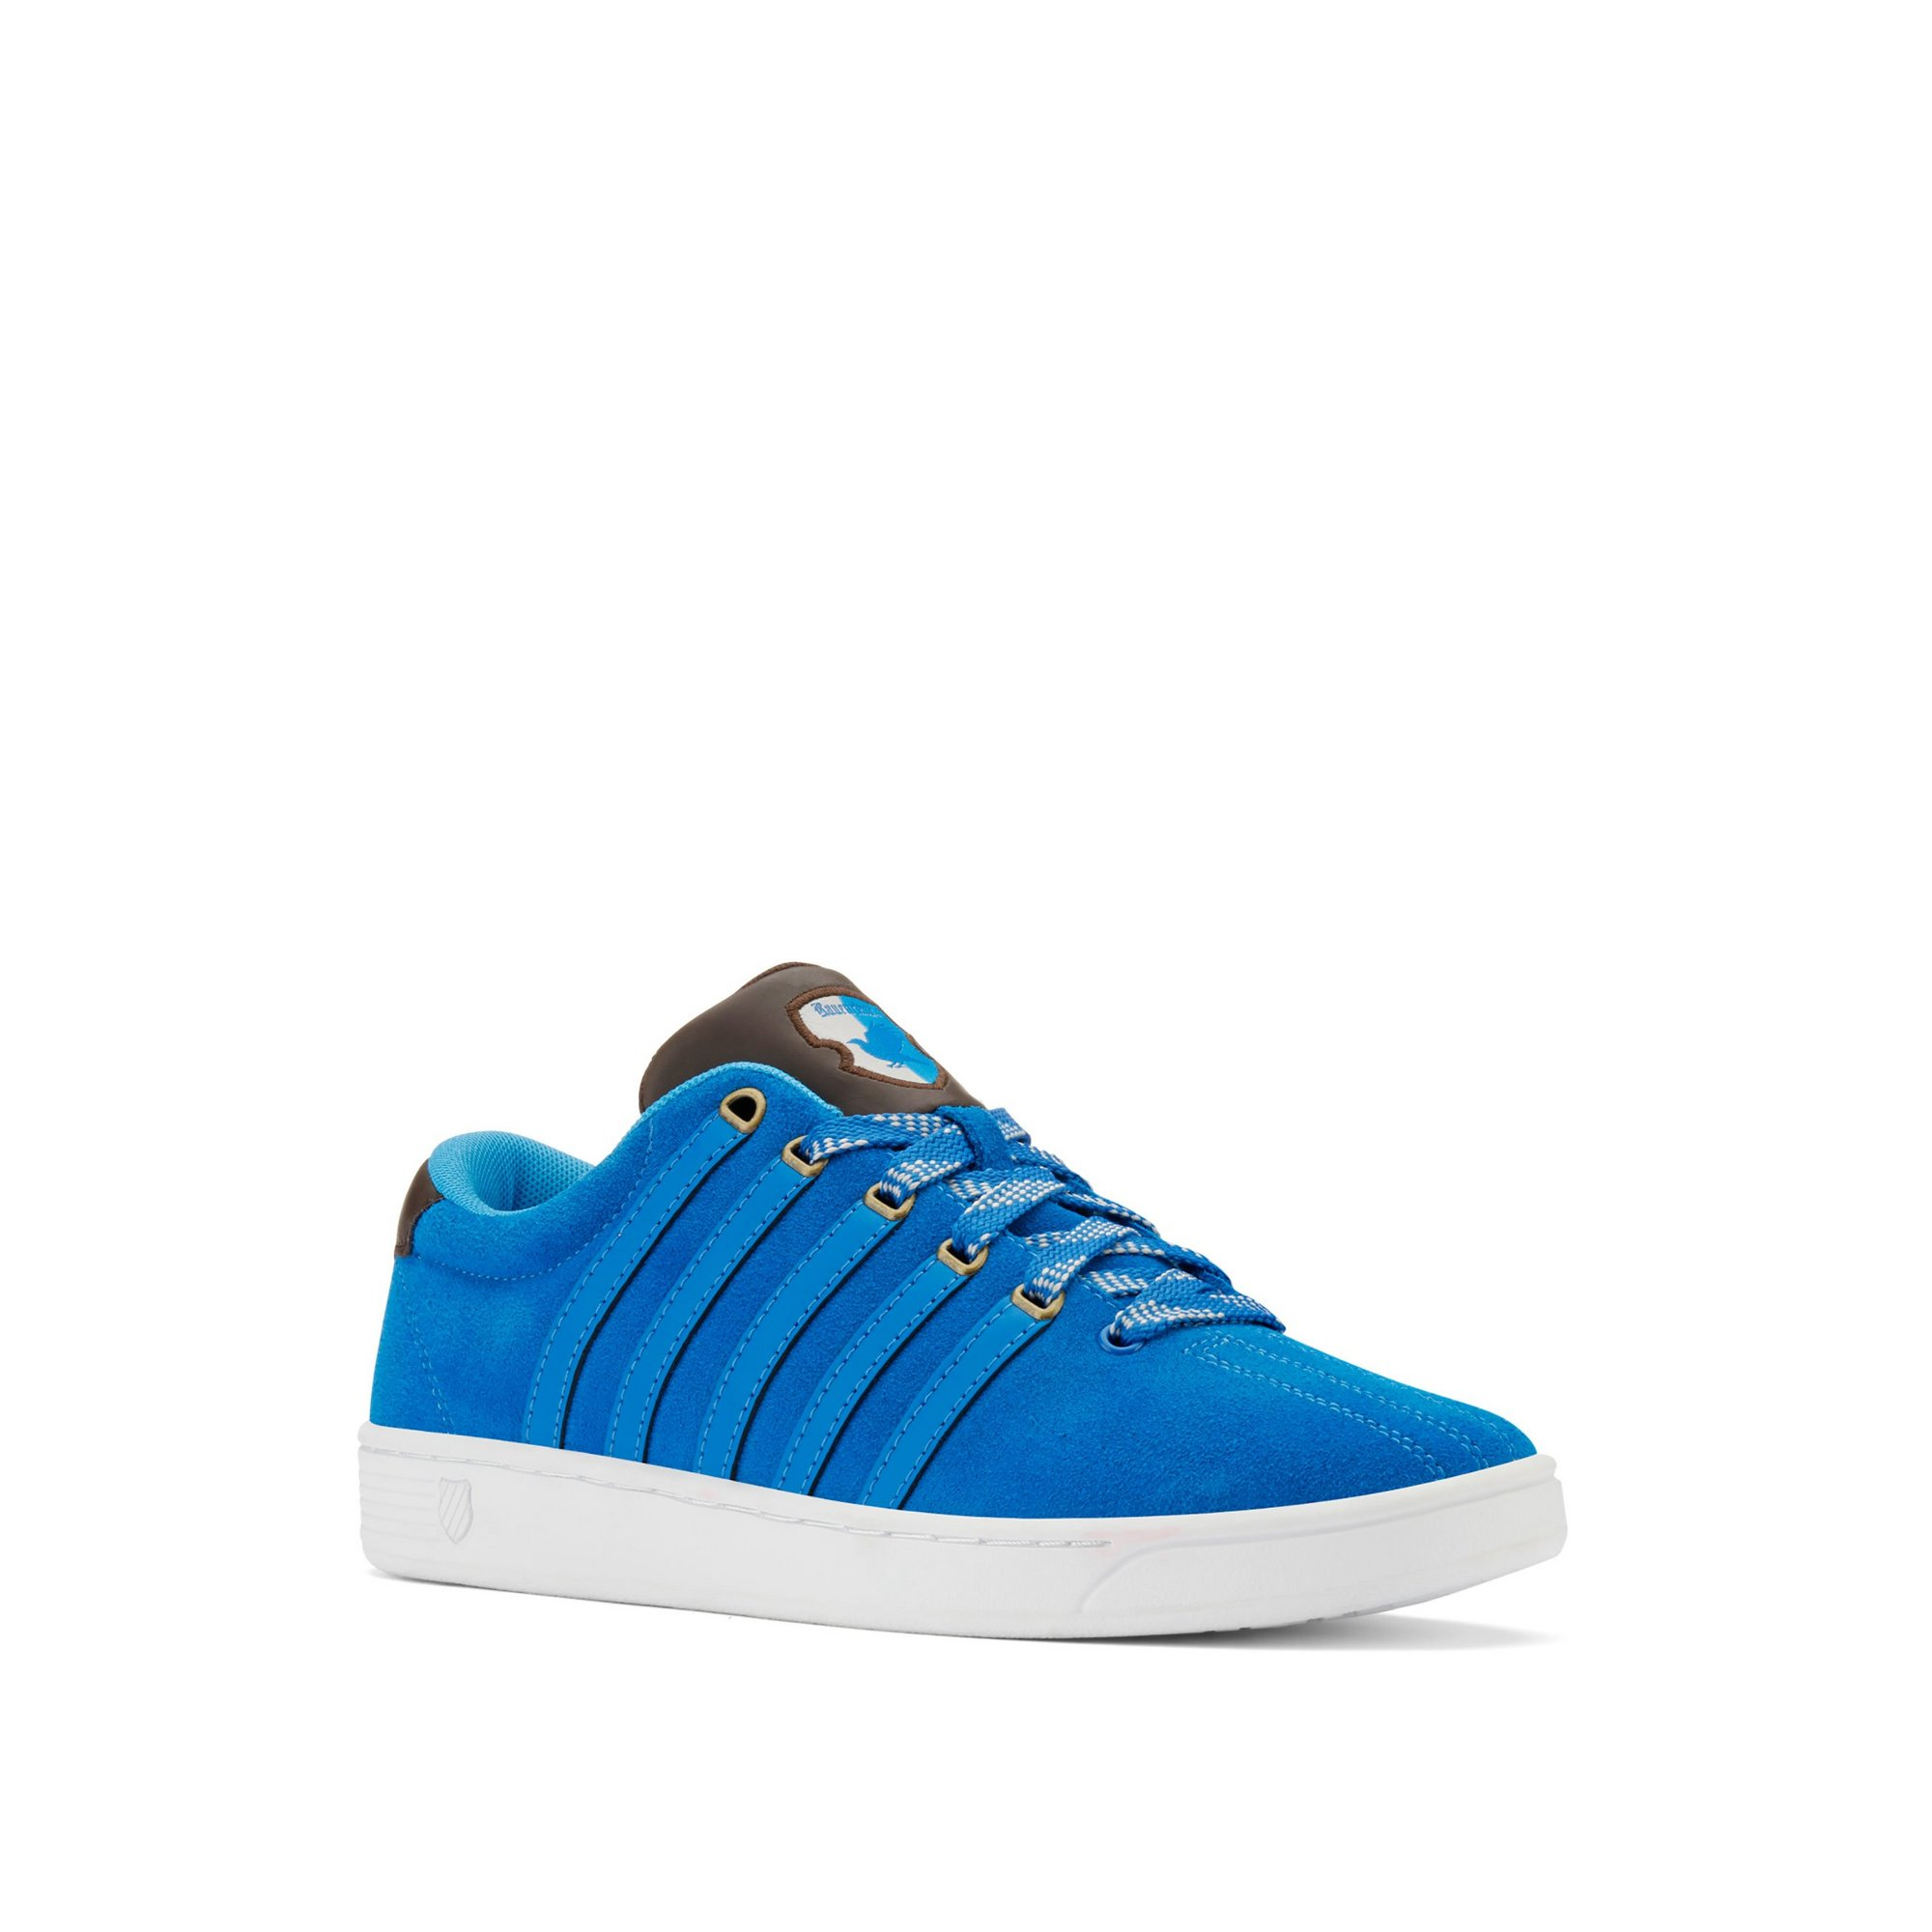 Image of K-Swiss x Harry Potter Court Pro Ravenclaw Trainers